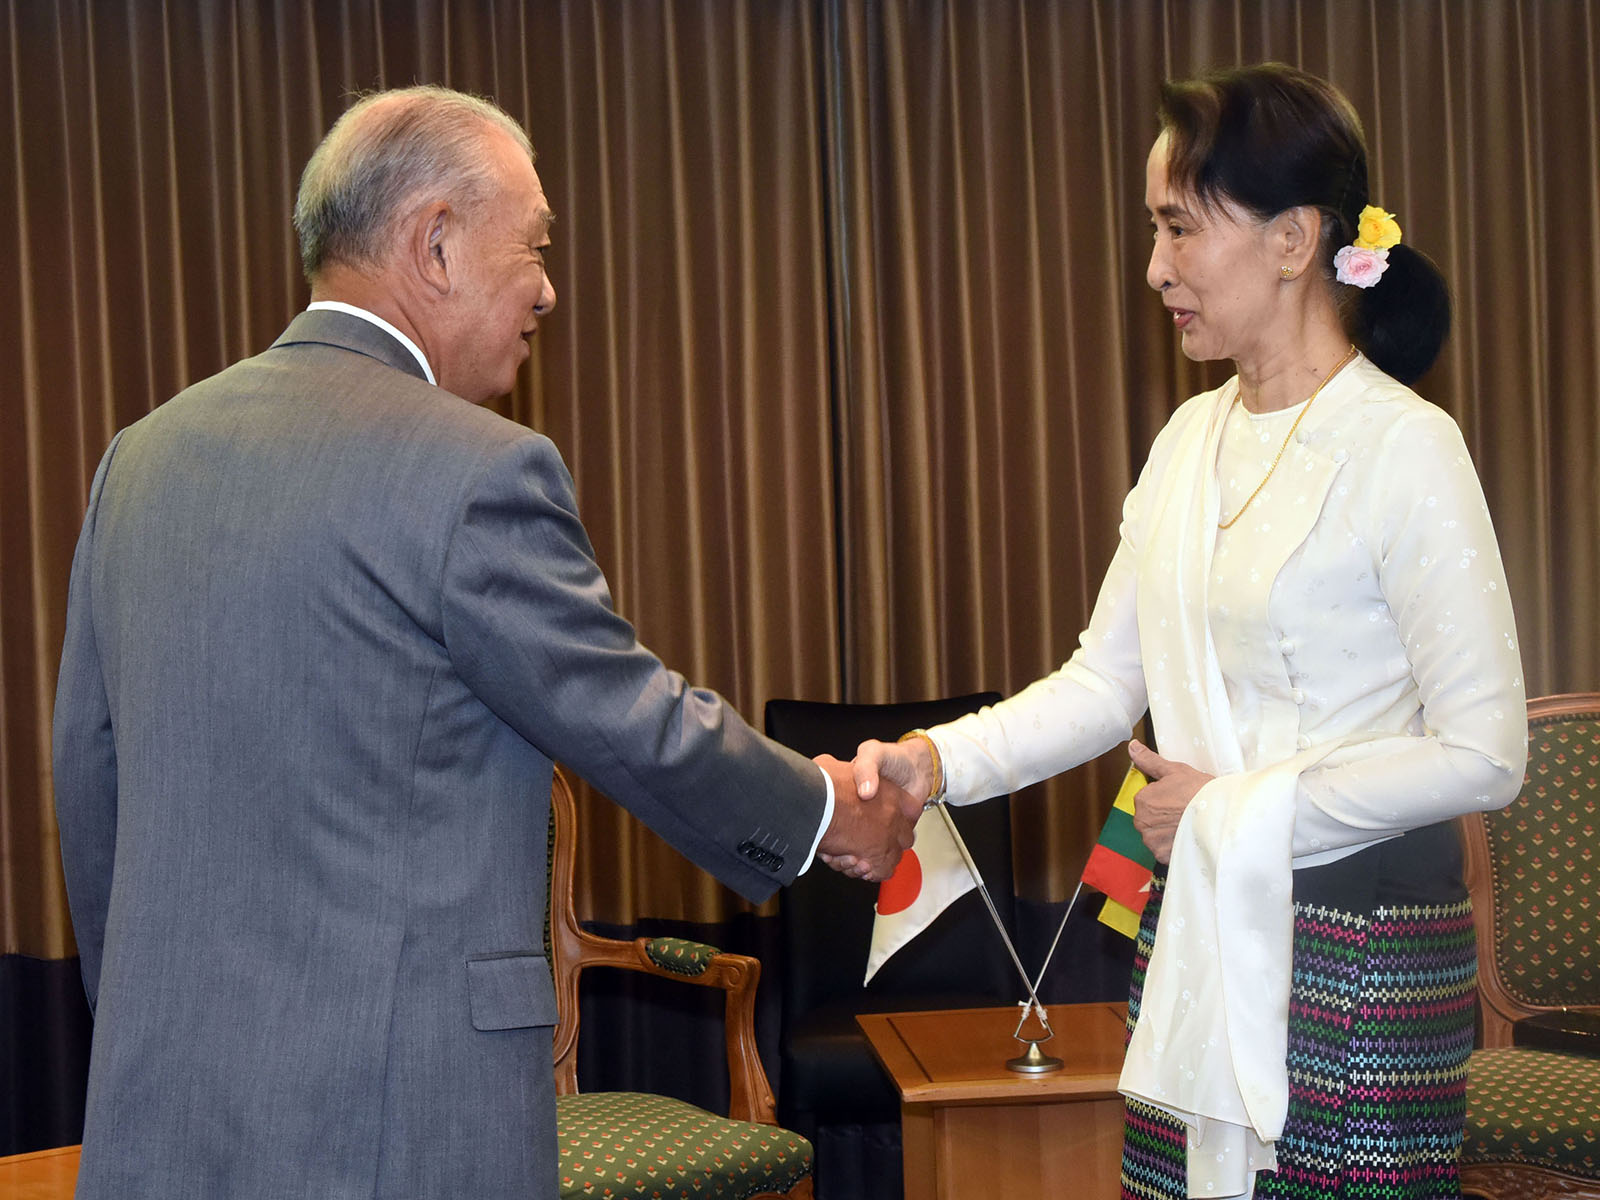 State Counsellor Daw Aung San Suu Kyi shakes hands with Mr. Yohei Sasakawa, the Special Envoy of the Japanese Government for National Reconciliation in Myanmar.Photo: MNA